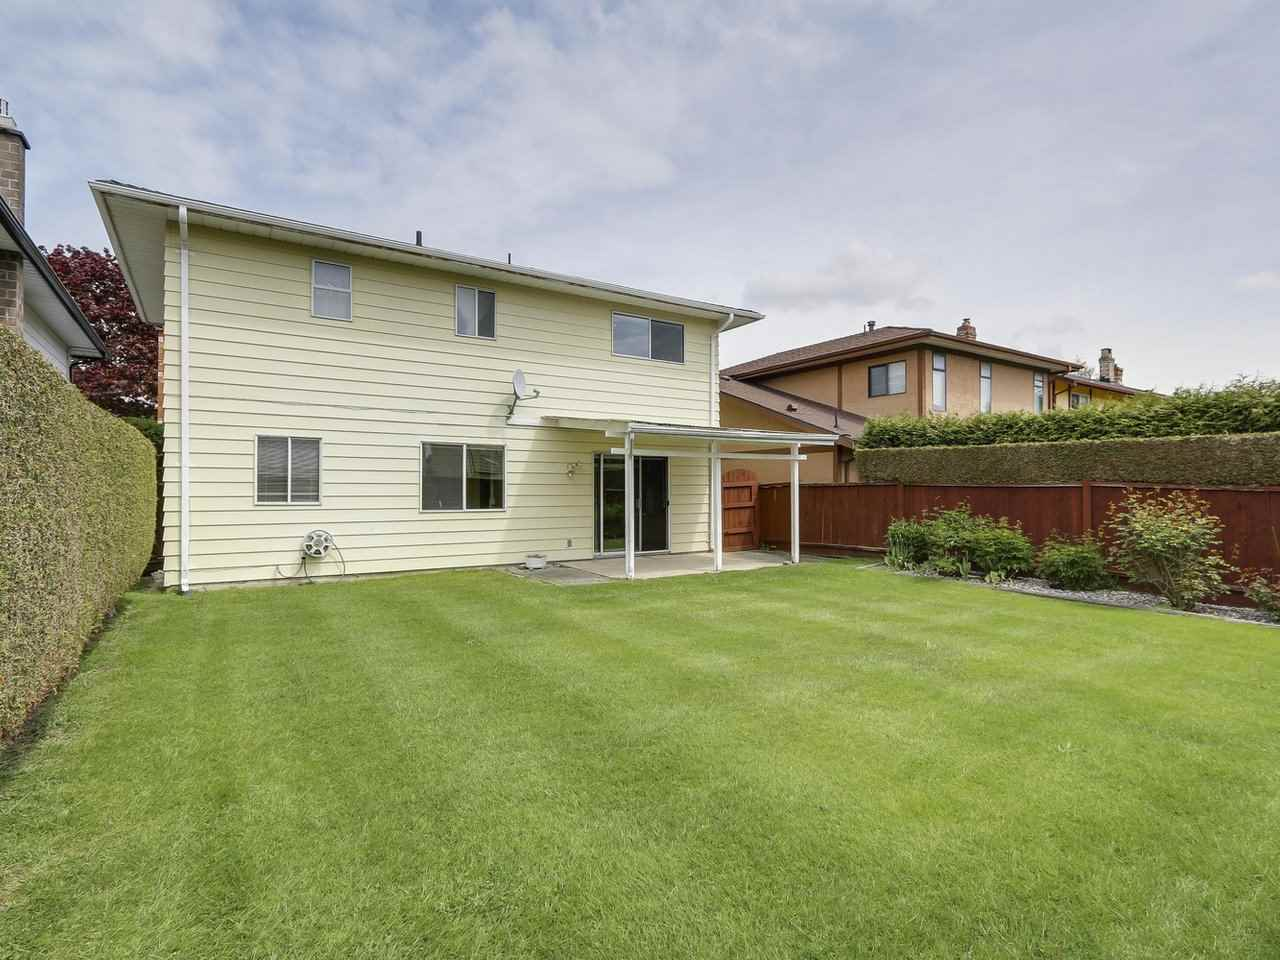 Photo 20: 10631 HOLLYBANK Drive in Richmond: Steveston North House for sale : MLS® # R2168914